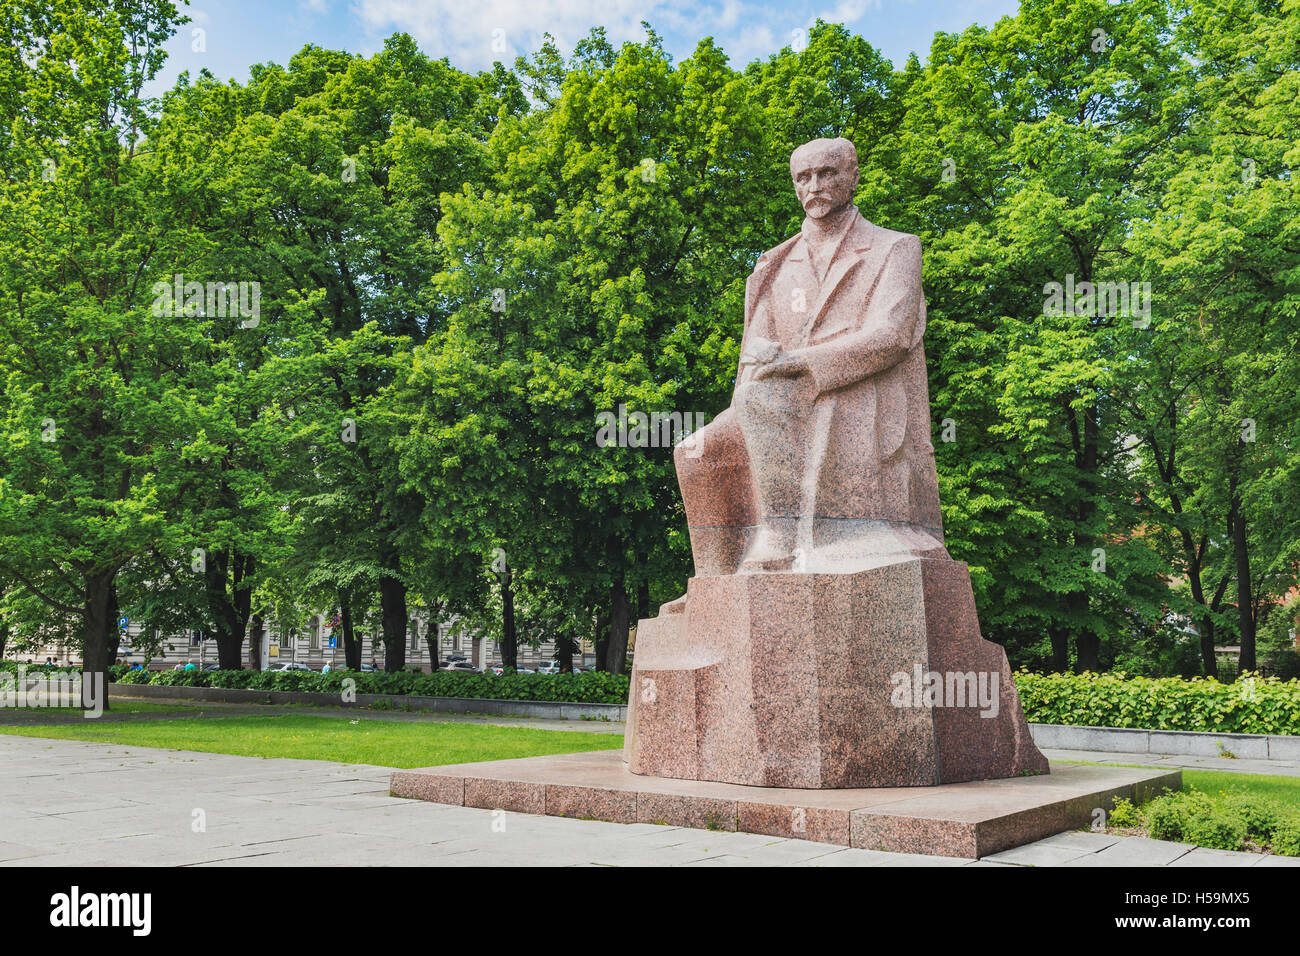 The monument of Janis Rainis (1865-1929) is located in the Vermanes Garden in Riga, Latvia, Baltic States, Europe Stock Photo